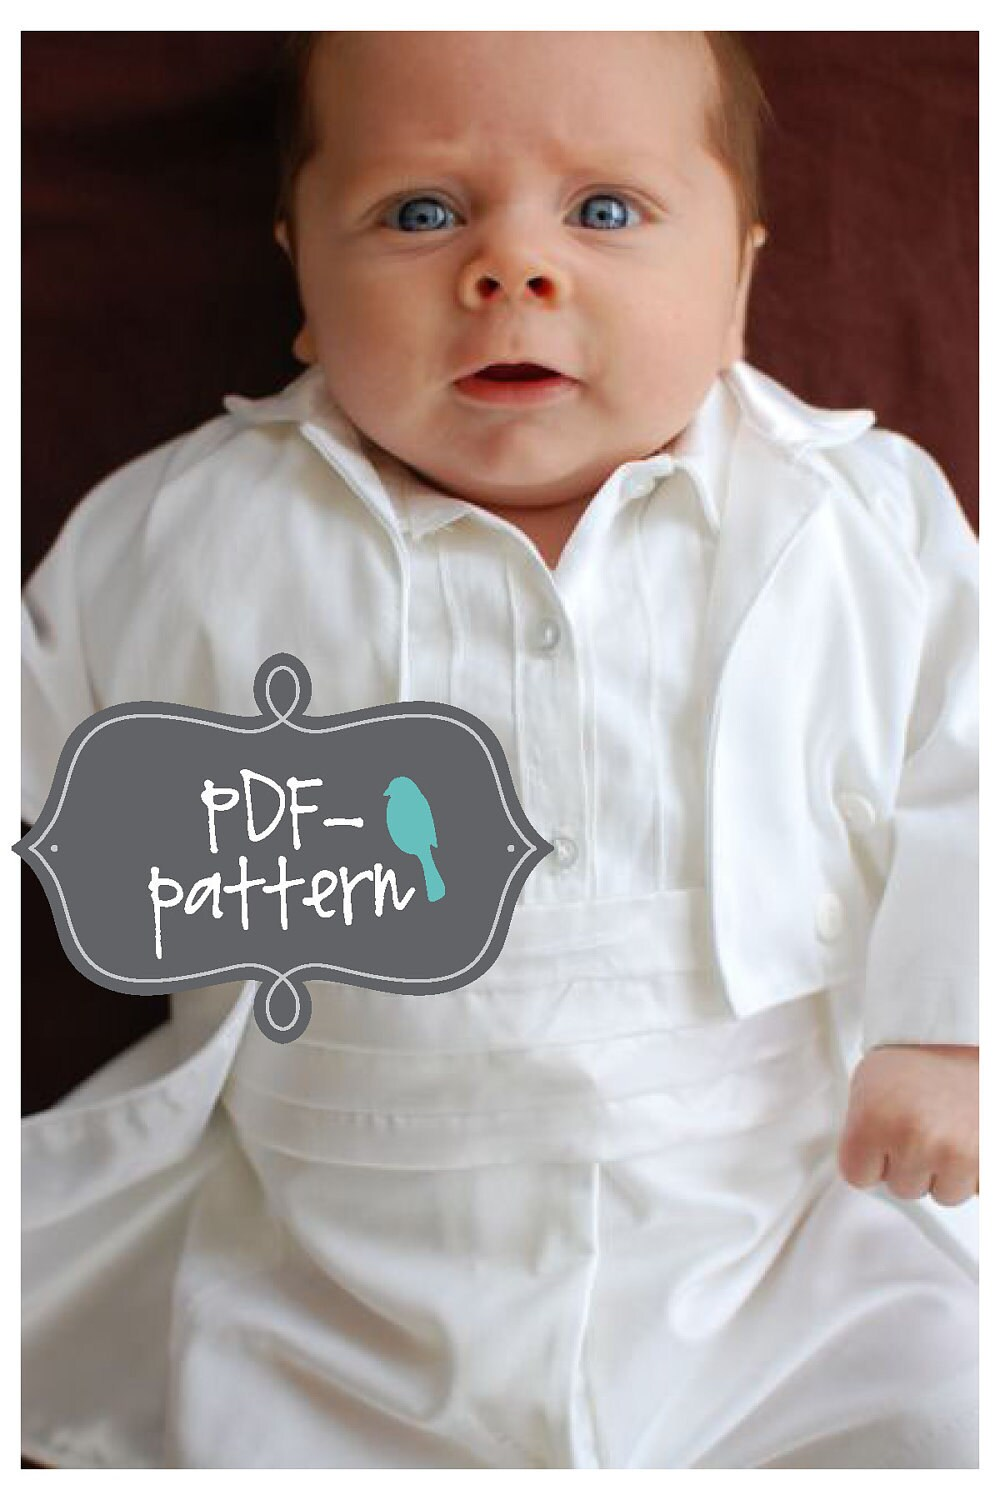 Tuxedos for Boys of all ages from baby to toddler to Teen Tuxedos. Why Rent when you can buy for less. Buy Direct and Save. All colors available including white tuxedos for baptism and christenings.